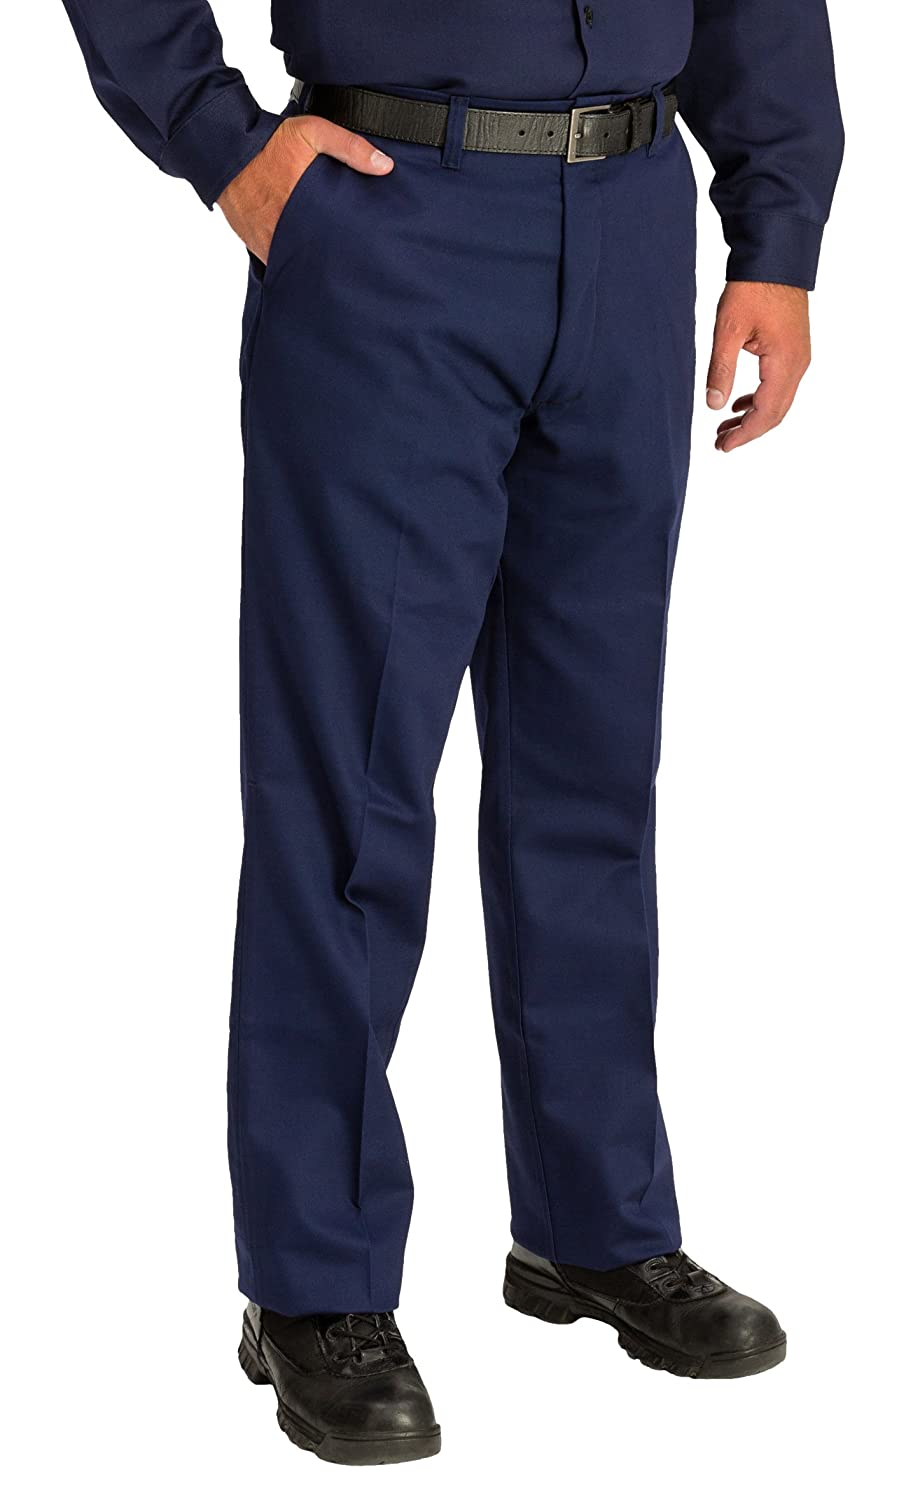 TOPPS SAFETY PA26-3905-36 INDURA Pants, 9.0 oz, 36